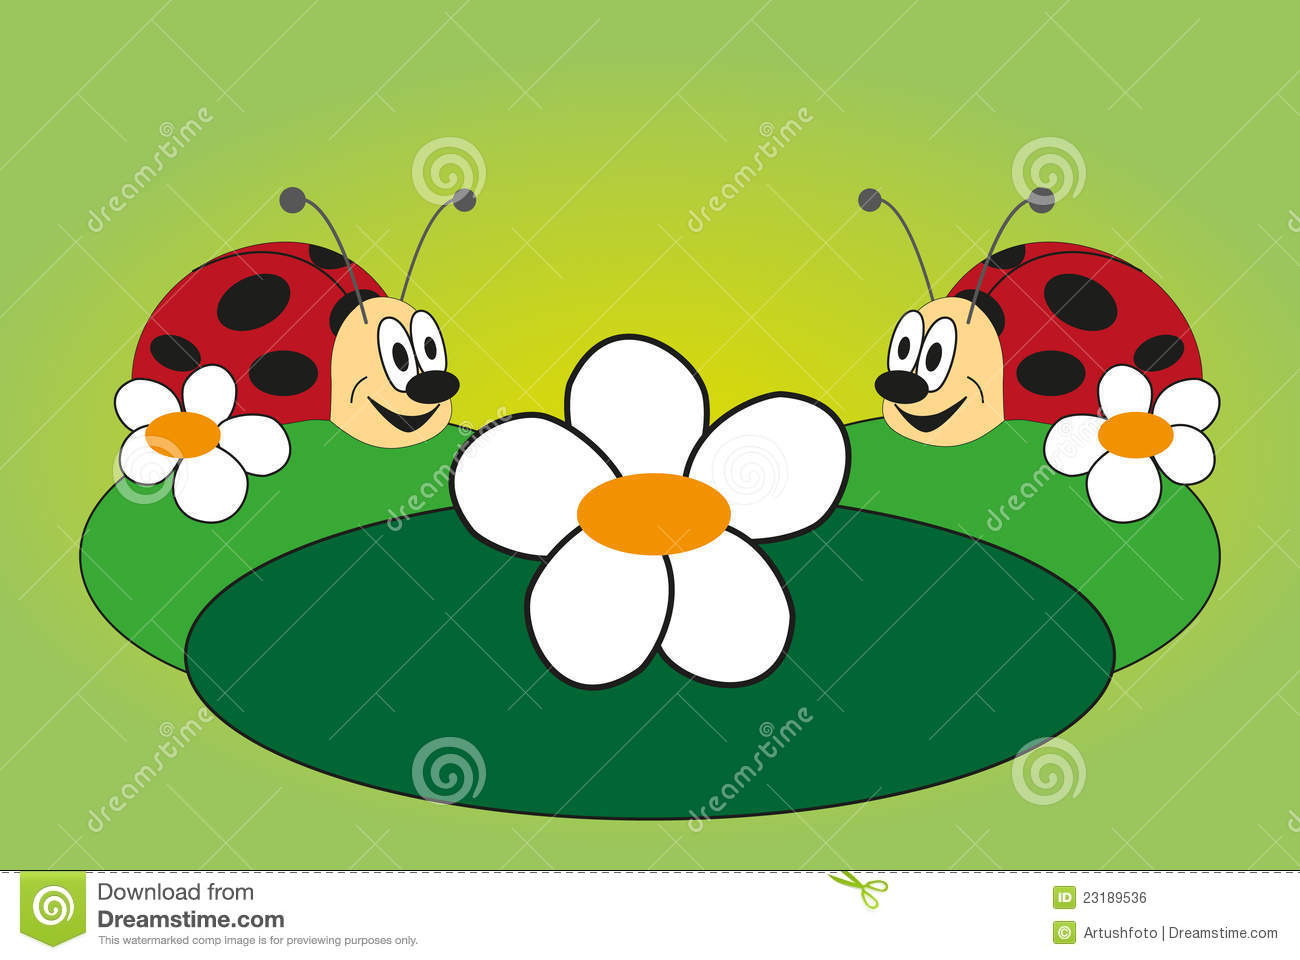 Funny Picture Of Two Ladybug Royalty Free Stock Image   Image